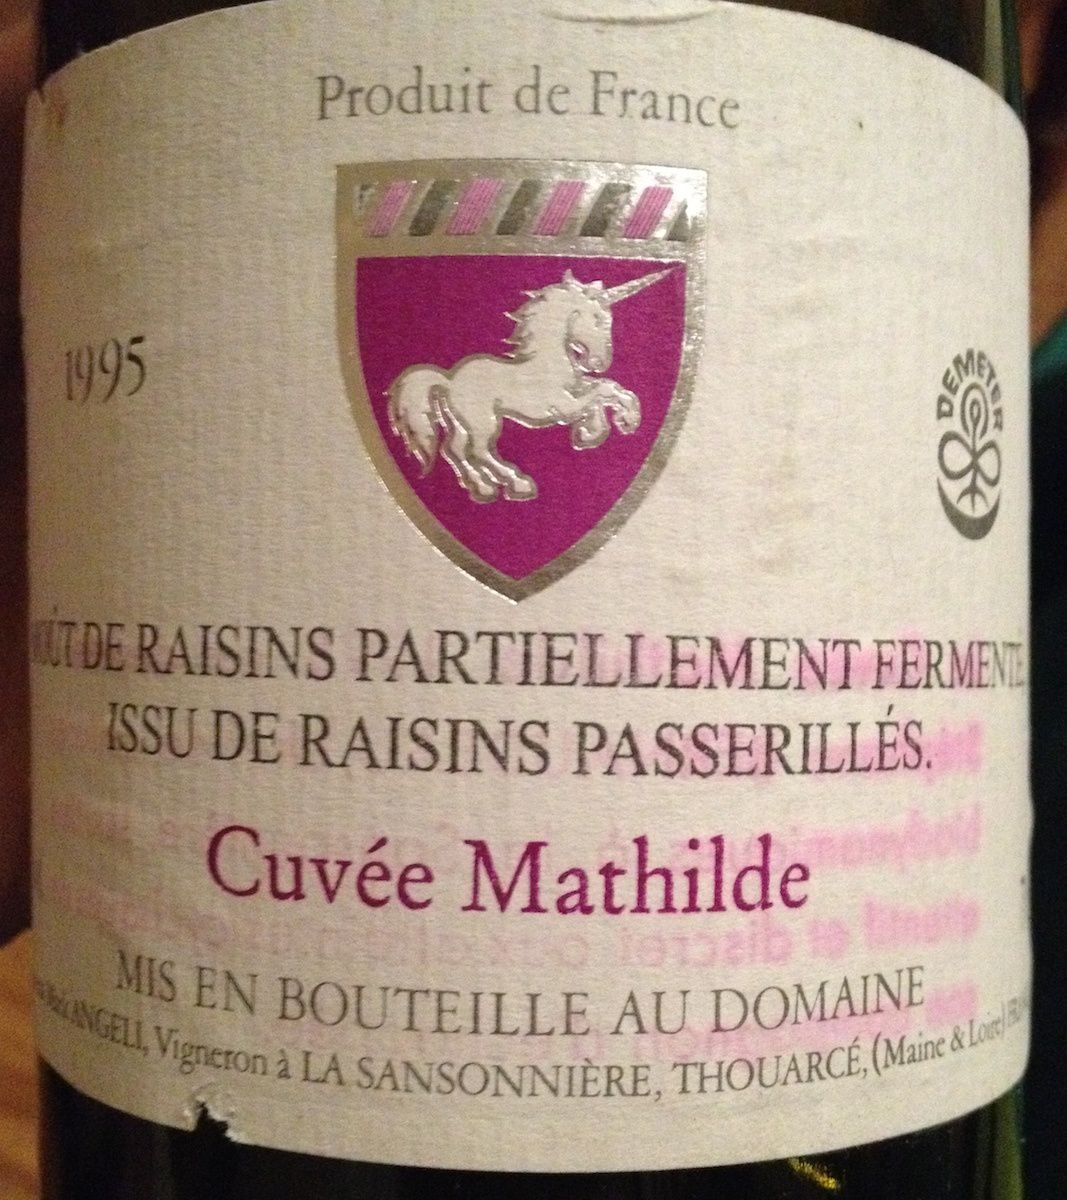 angeli cuvee mathilde 1995